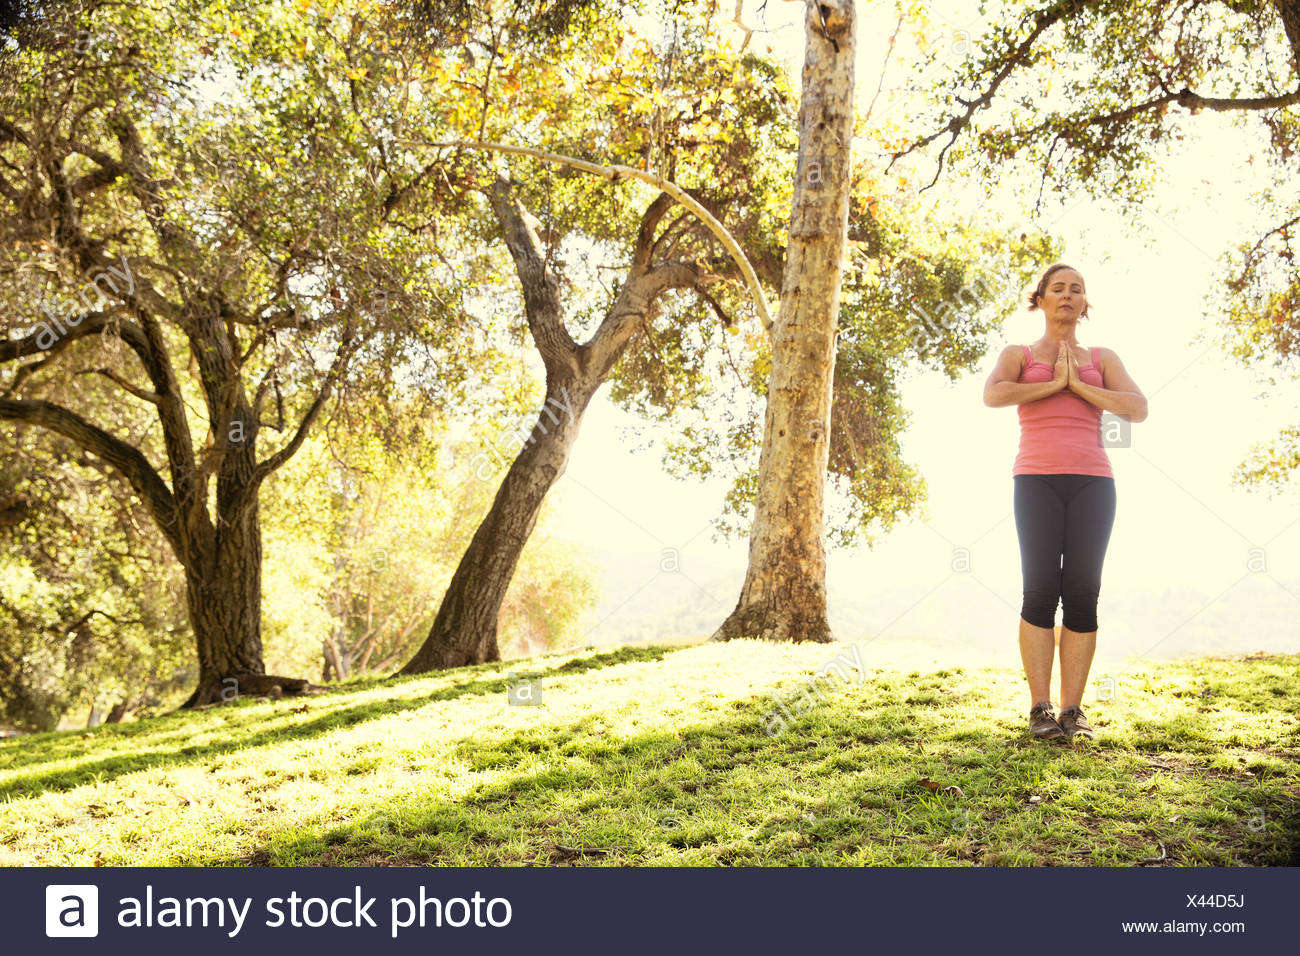 Mature woman in park practicing yoga - Stock Image